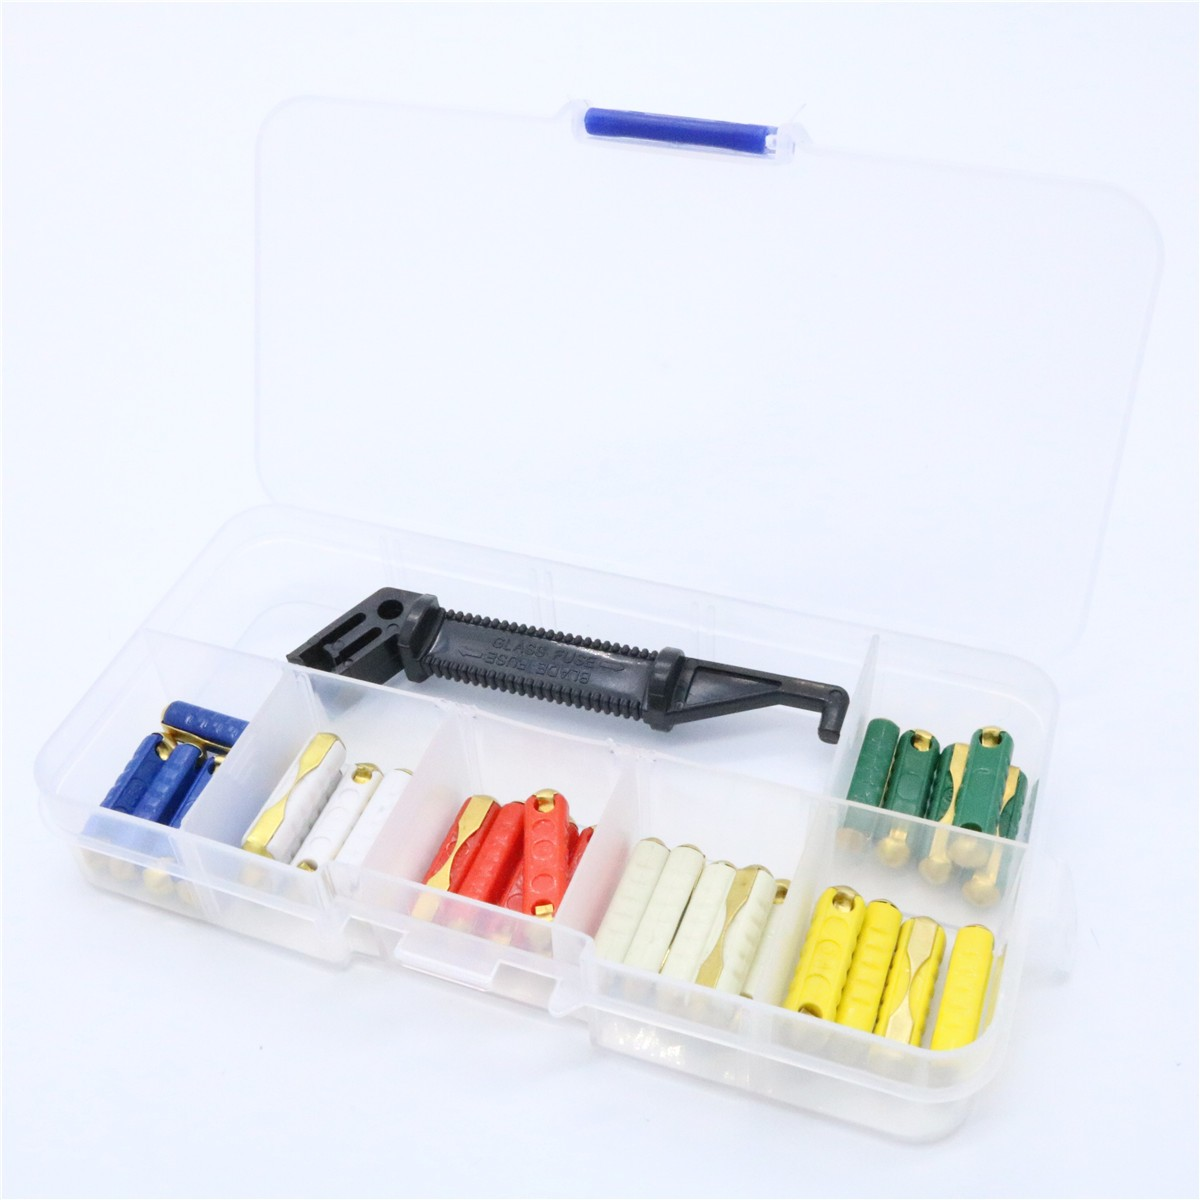 medium resolution of 32v european continental car fuse kit fuse puller plastic box assortment auto car accessories accesorios automovil in fuses from automobiles motorcycles